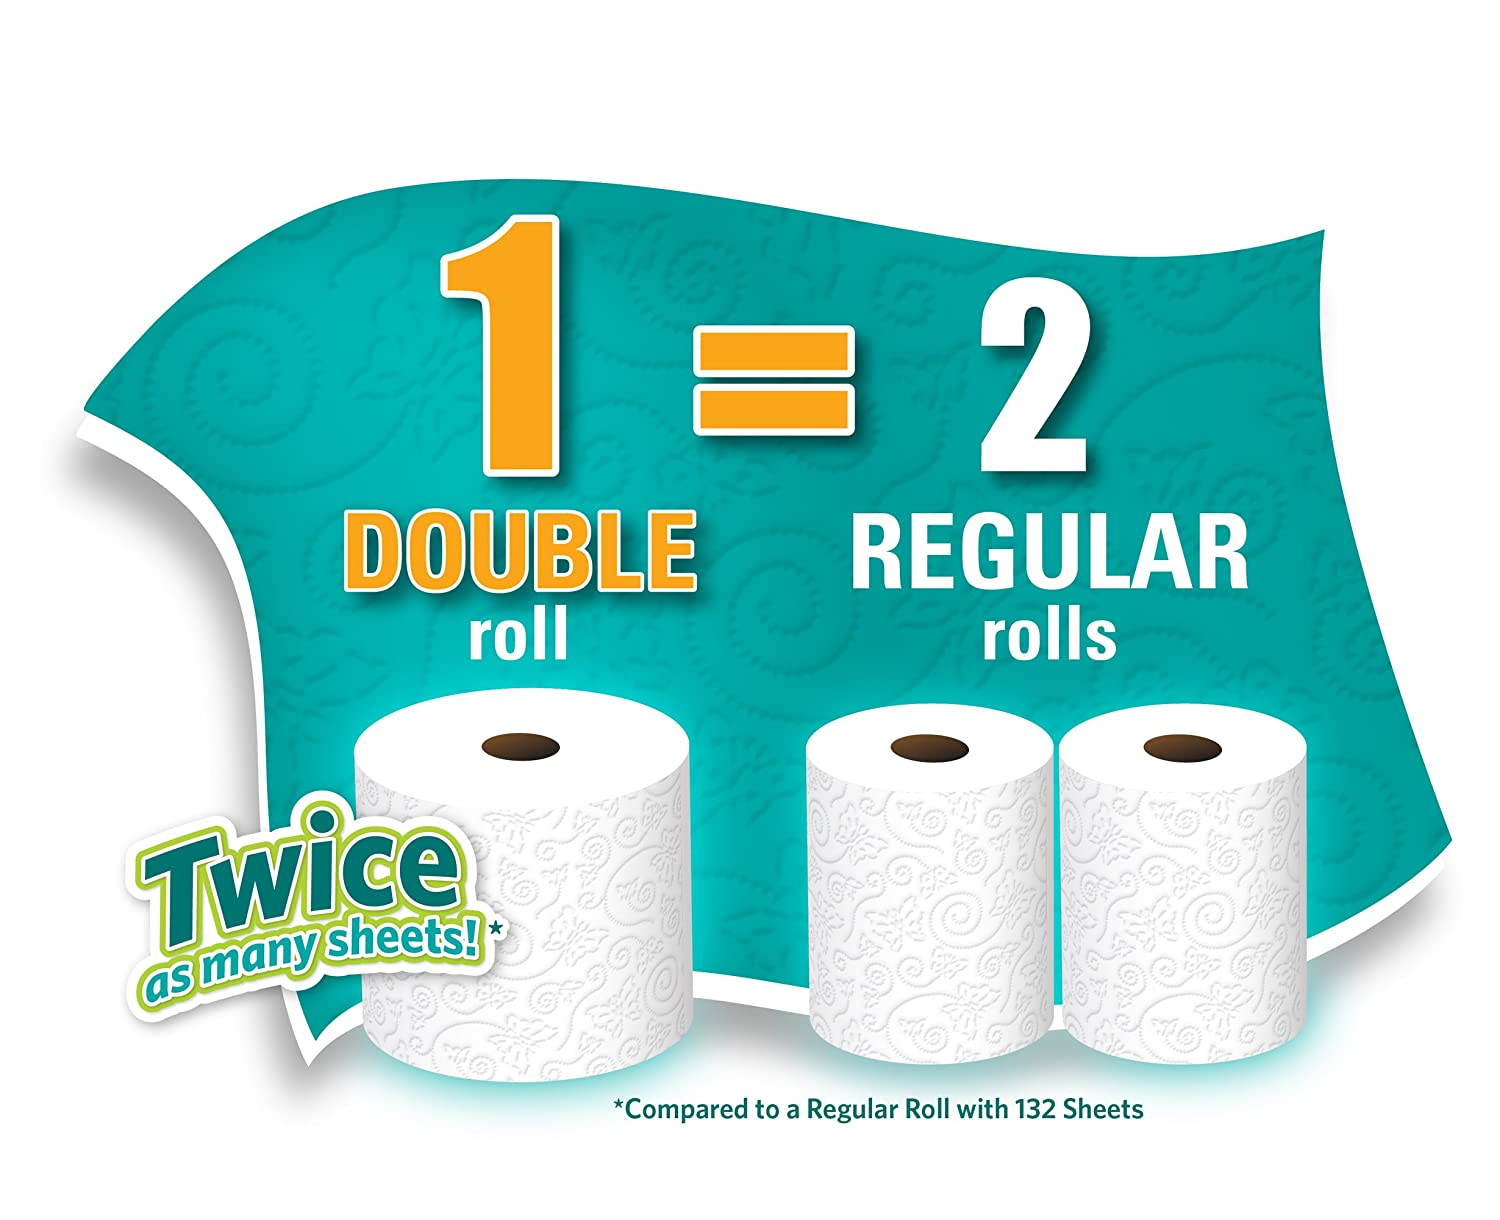 com angel soft toilet paper double rolls bath tissue com angel soft toilet paper 48 double rolls bath tissue pack of 4 12 rolls each health personal care